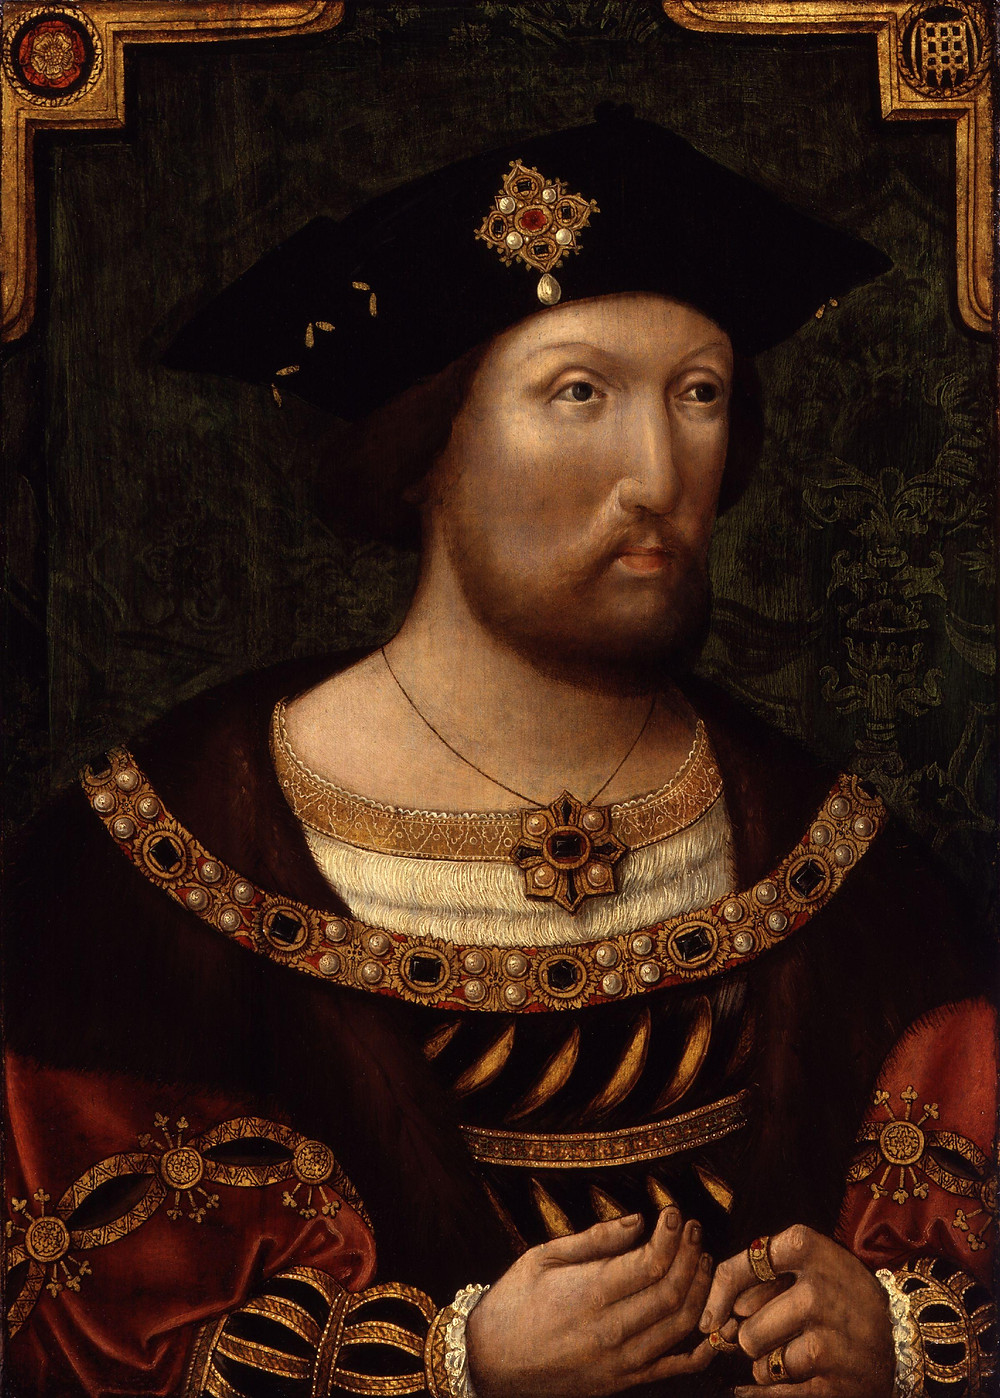 King Henry VIII, about 1520